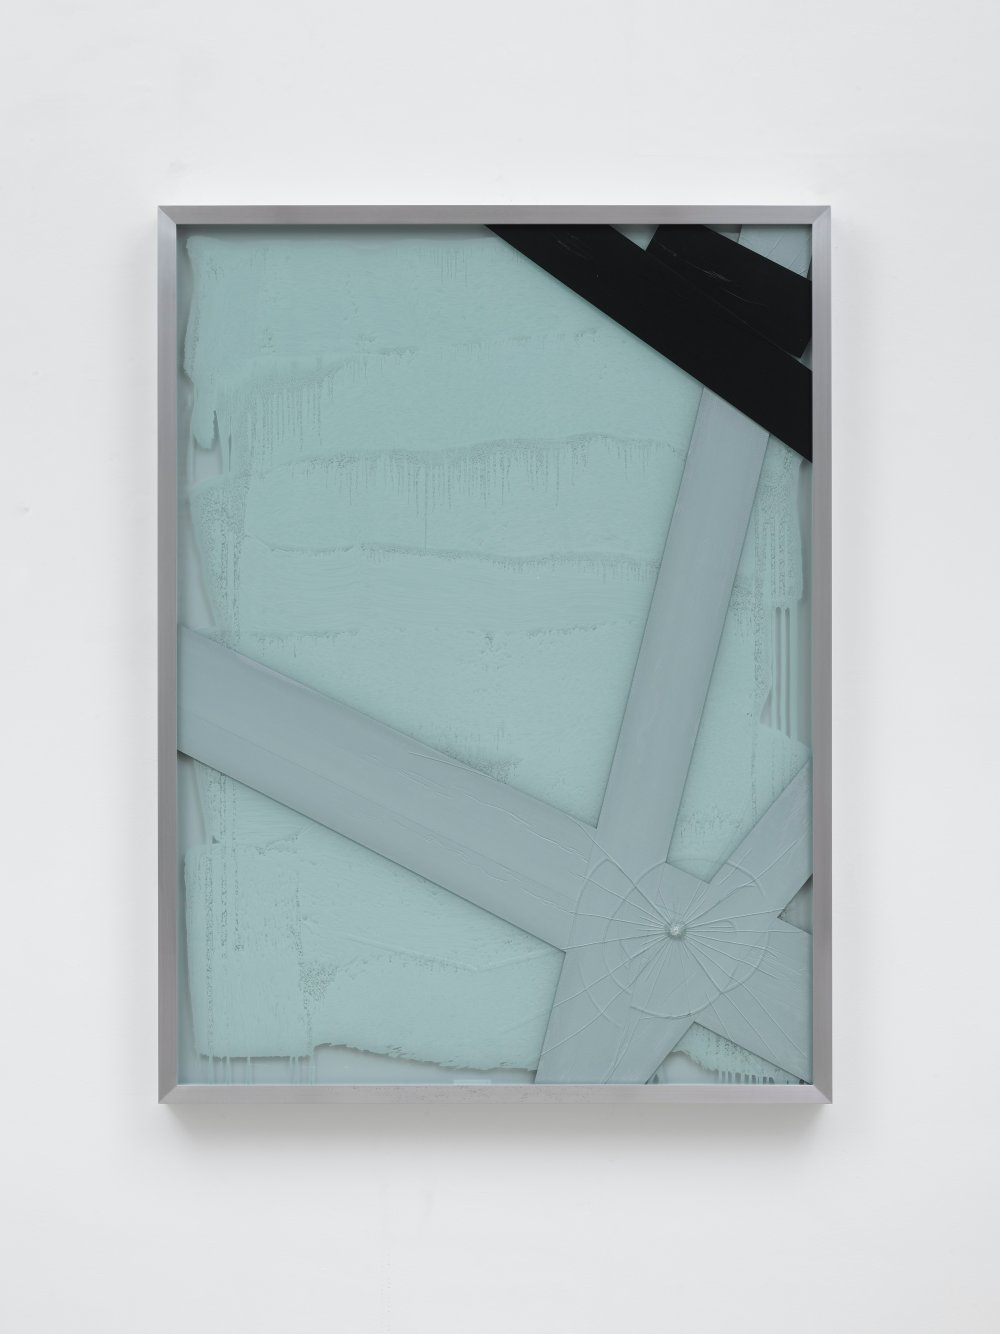 By physical or cognitive means (Broken Window Theory 22 June)